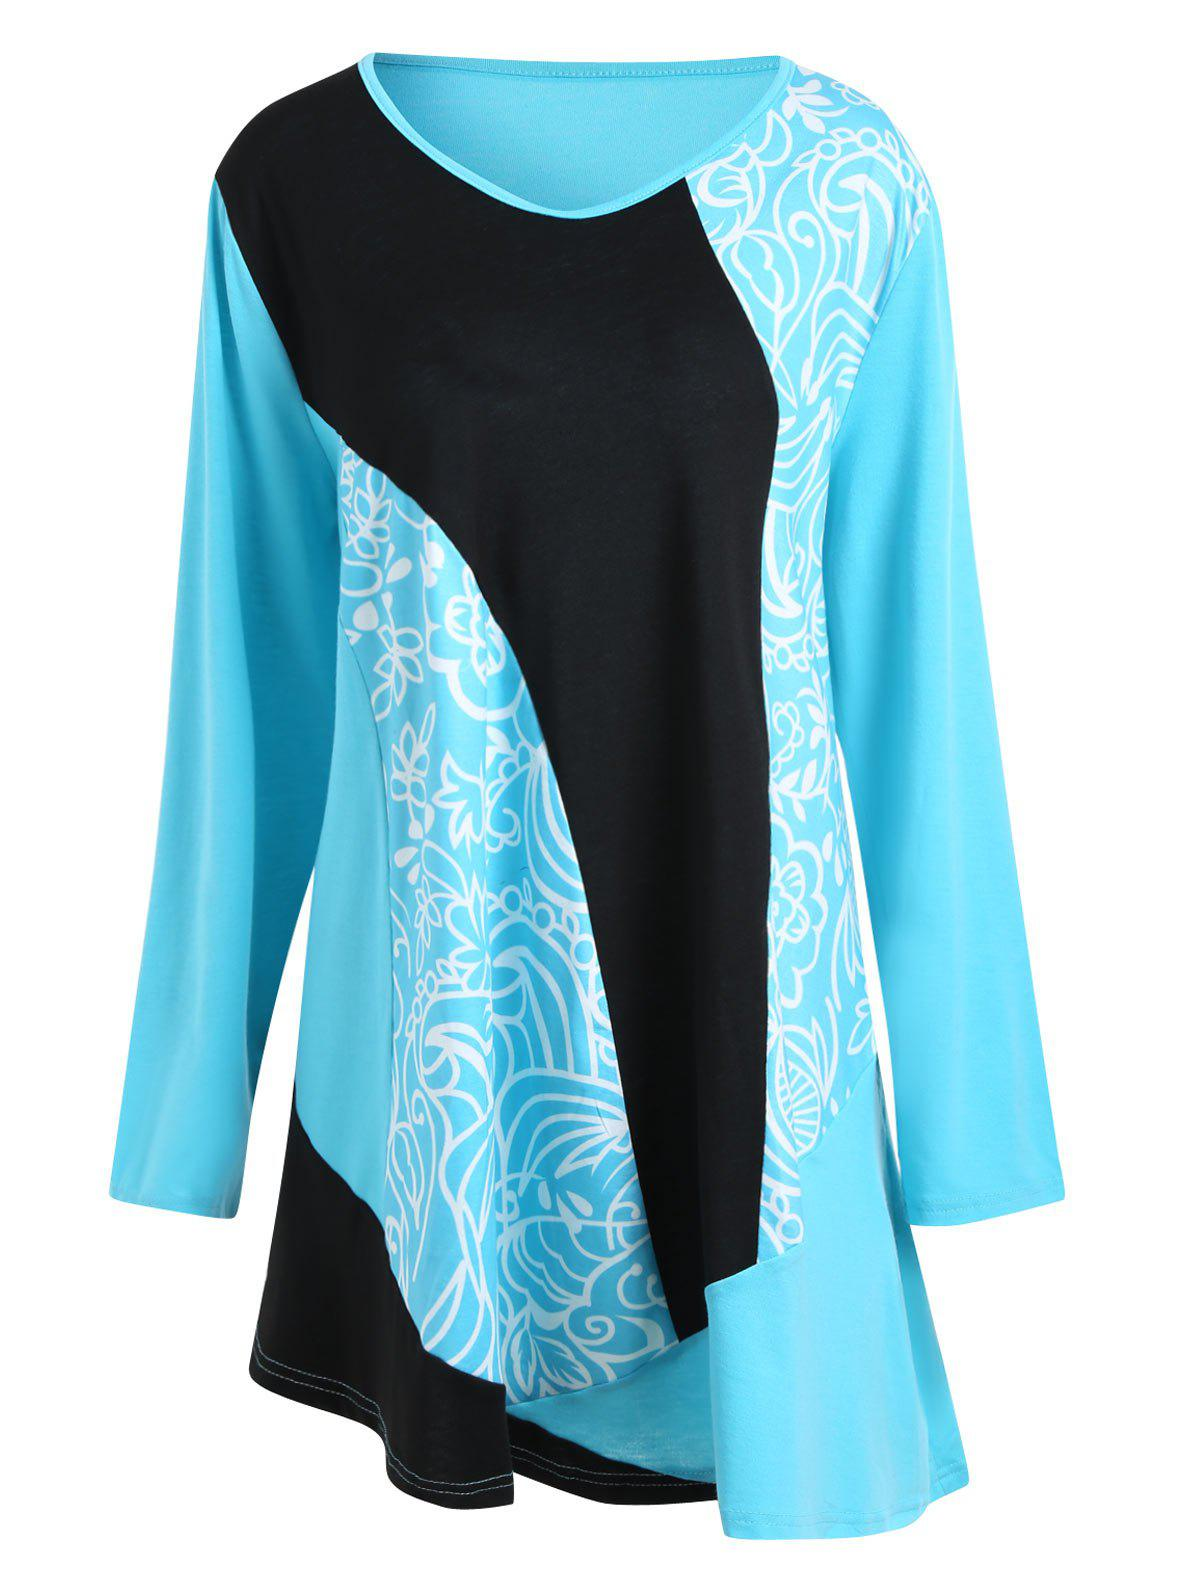 Color Block  Floral Printed Plus Size Tee DressWOMEN<br><br>Size: 5XL; Color: BLUE; Style: Casual; Material: Cotton Blend,Polyester; Silhouette: A-Line; Dresses Length: Mini; Neckline: V-Neck; Sleeve Length: Long Sleeves; Pattern Type: Floral,Print; With Belt: No; Season: Fall,Spring; Weight: 0.3600kg; Package Contents: 1 x Dress;